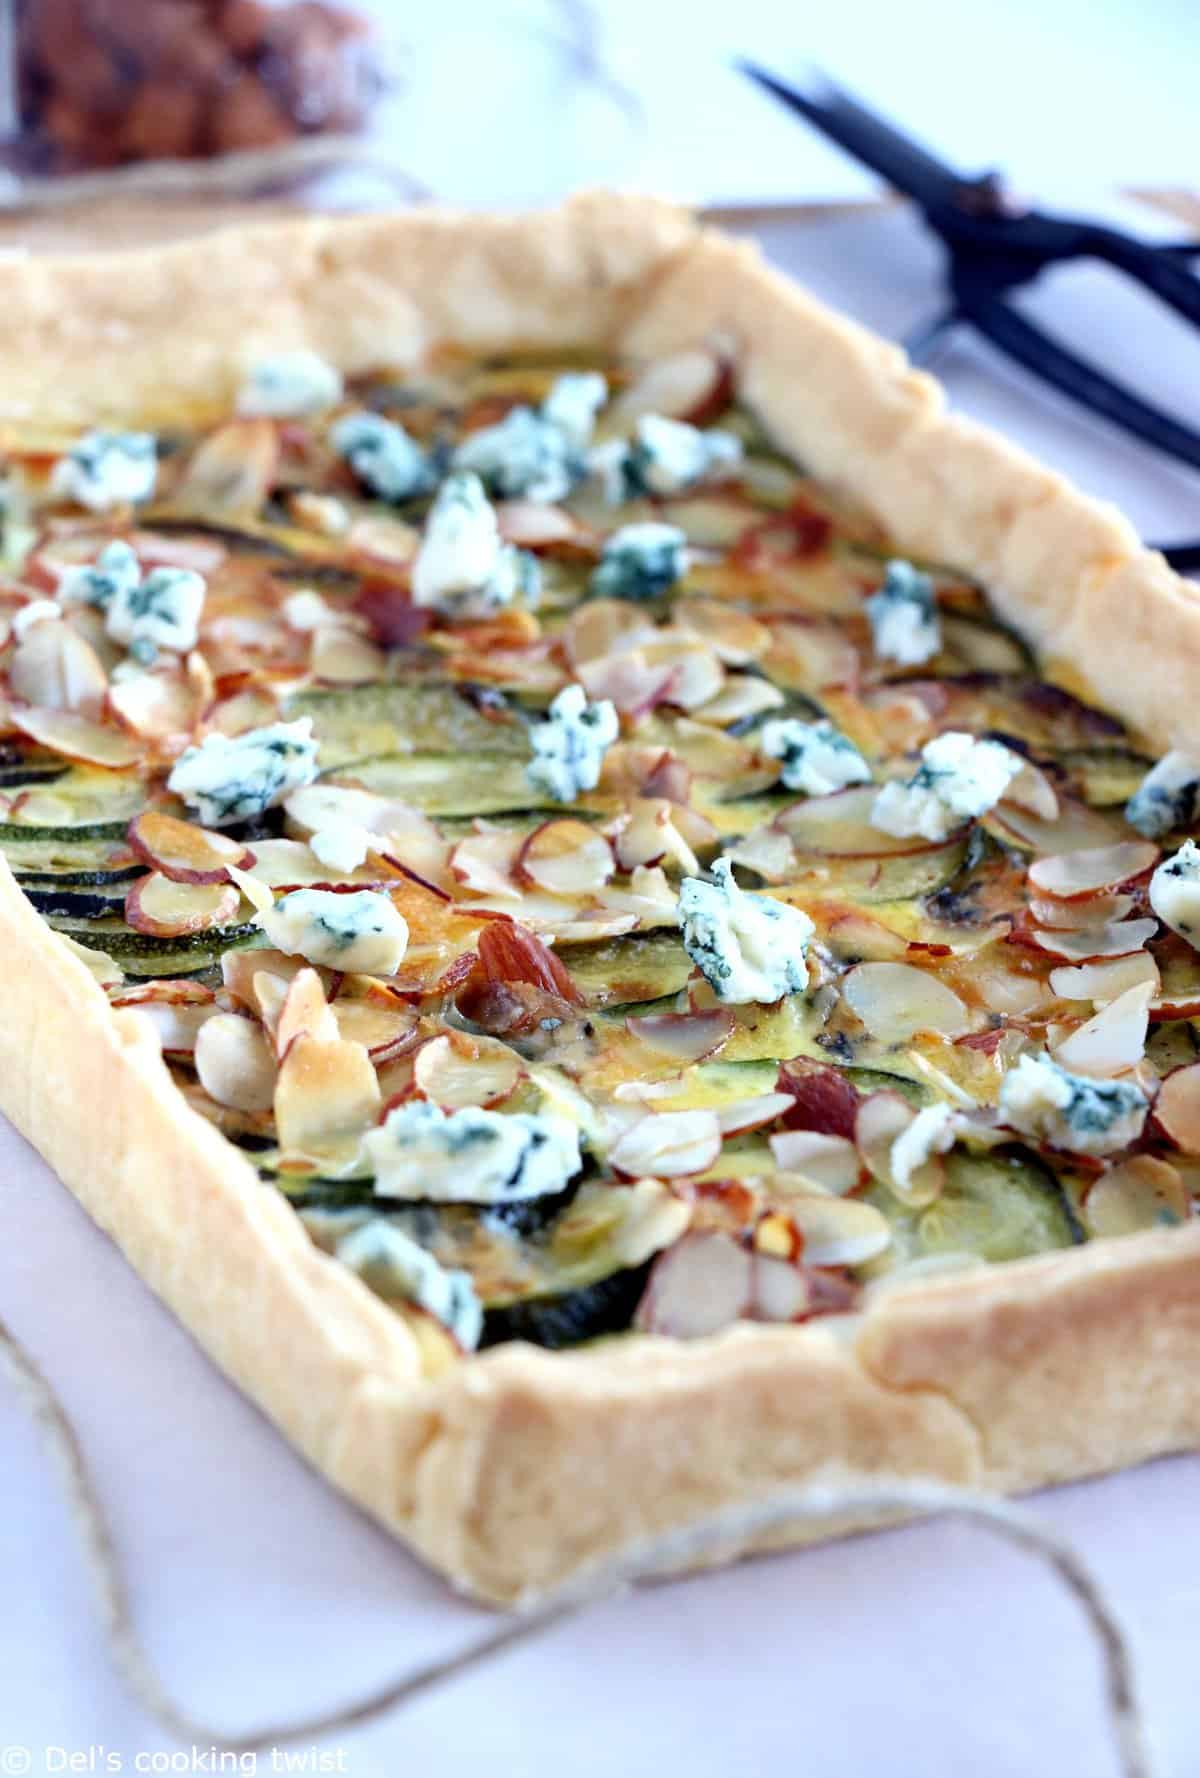 Almond, Zucchini and Blue Cheese Tart